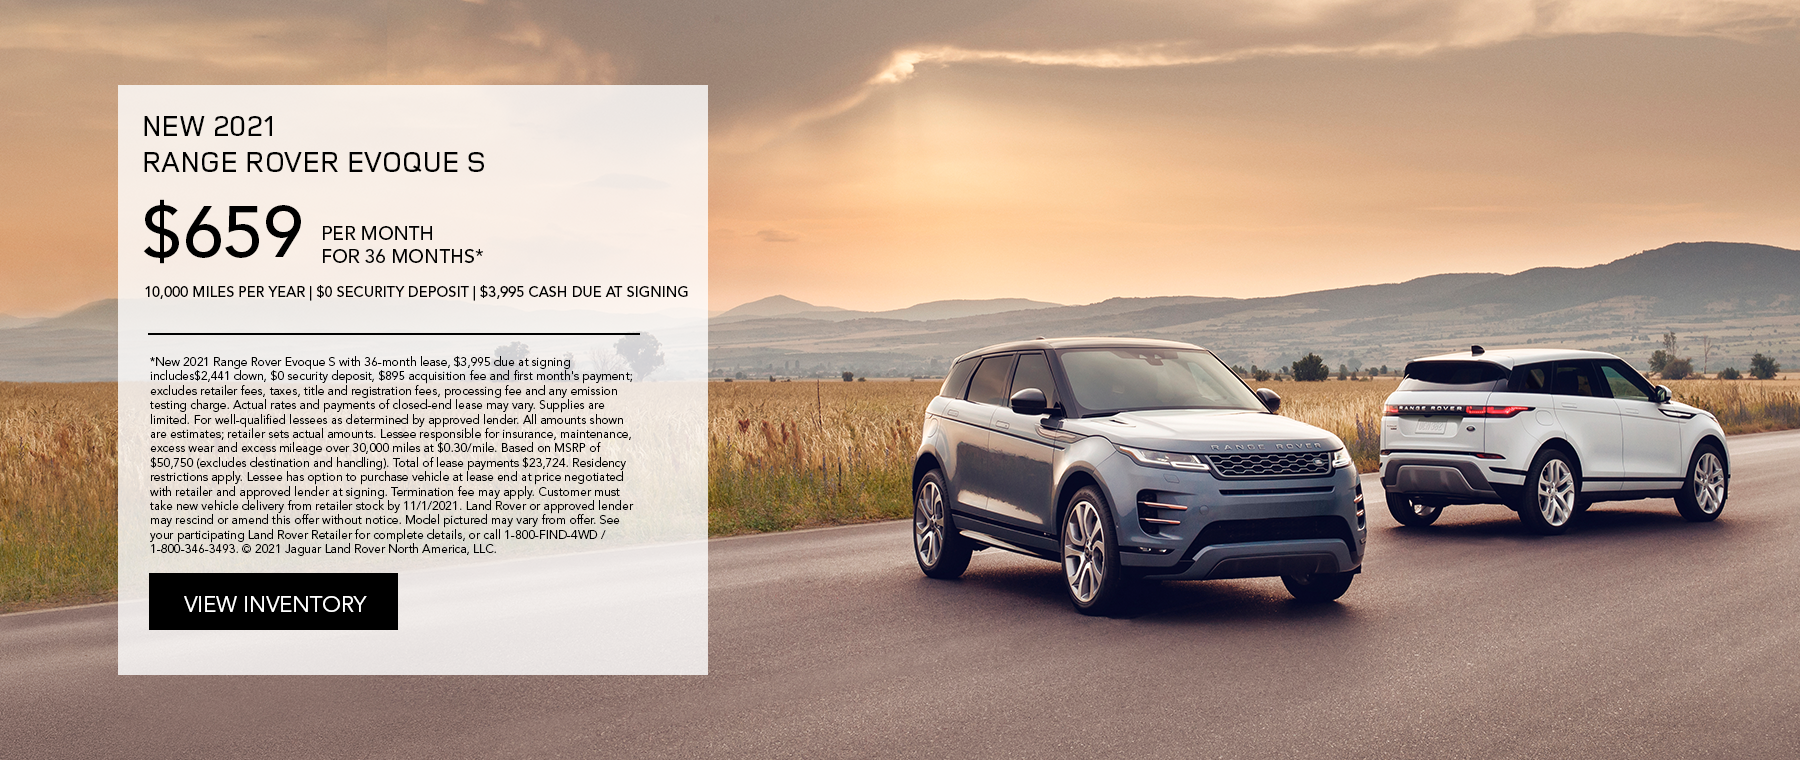 NEW 2021 RANGE ROVER EVOQUE S. $659 PER MONTH. 36 MONTH LEASE TERM. $3,995 CASH DUE AT SIGNING. $0 SECURITY DEPOSIT. 10,000 MILES PER YEAR. EXCLUDES RETAILER FEES, TAXES, TITLE AND REGISTRATION FEES, PROCESSING FEE AND ANY EMISSION TESTING CHARGE. OFFER ENDS 11/1/2021.